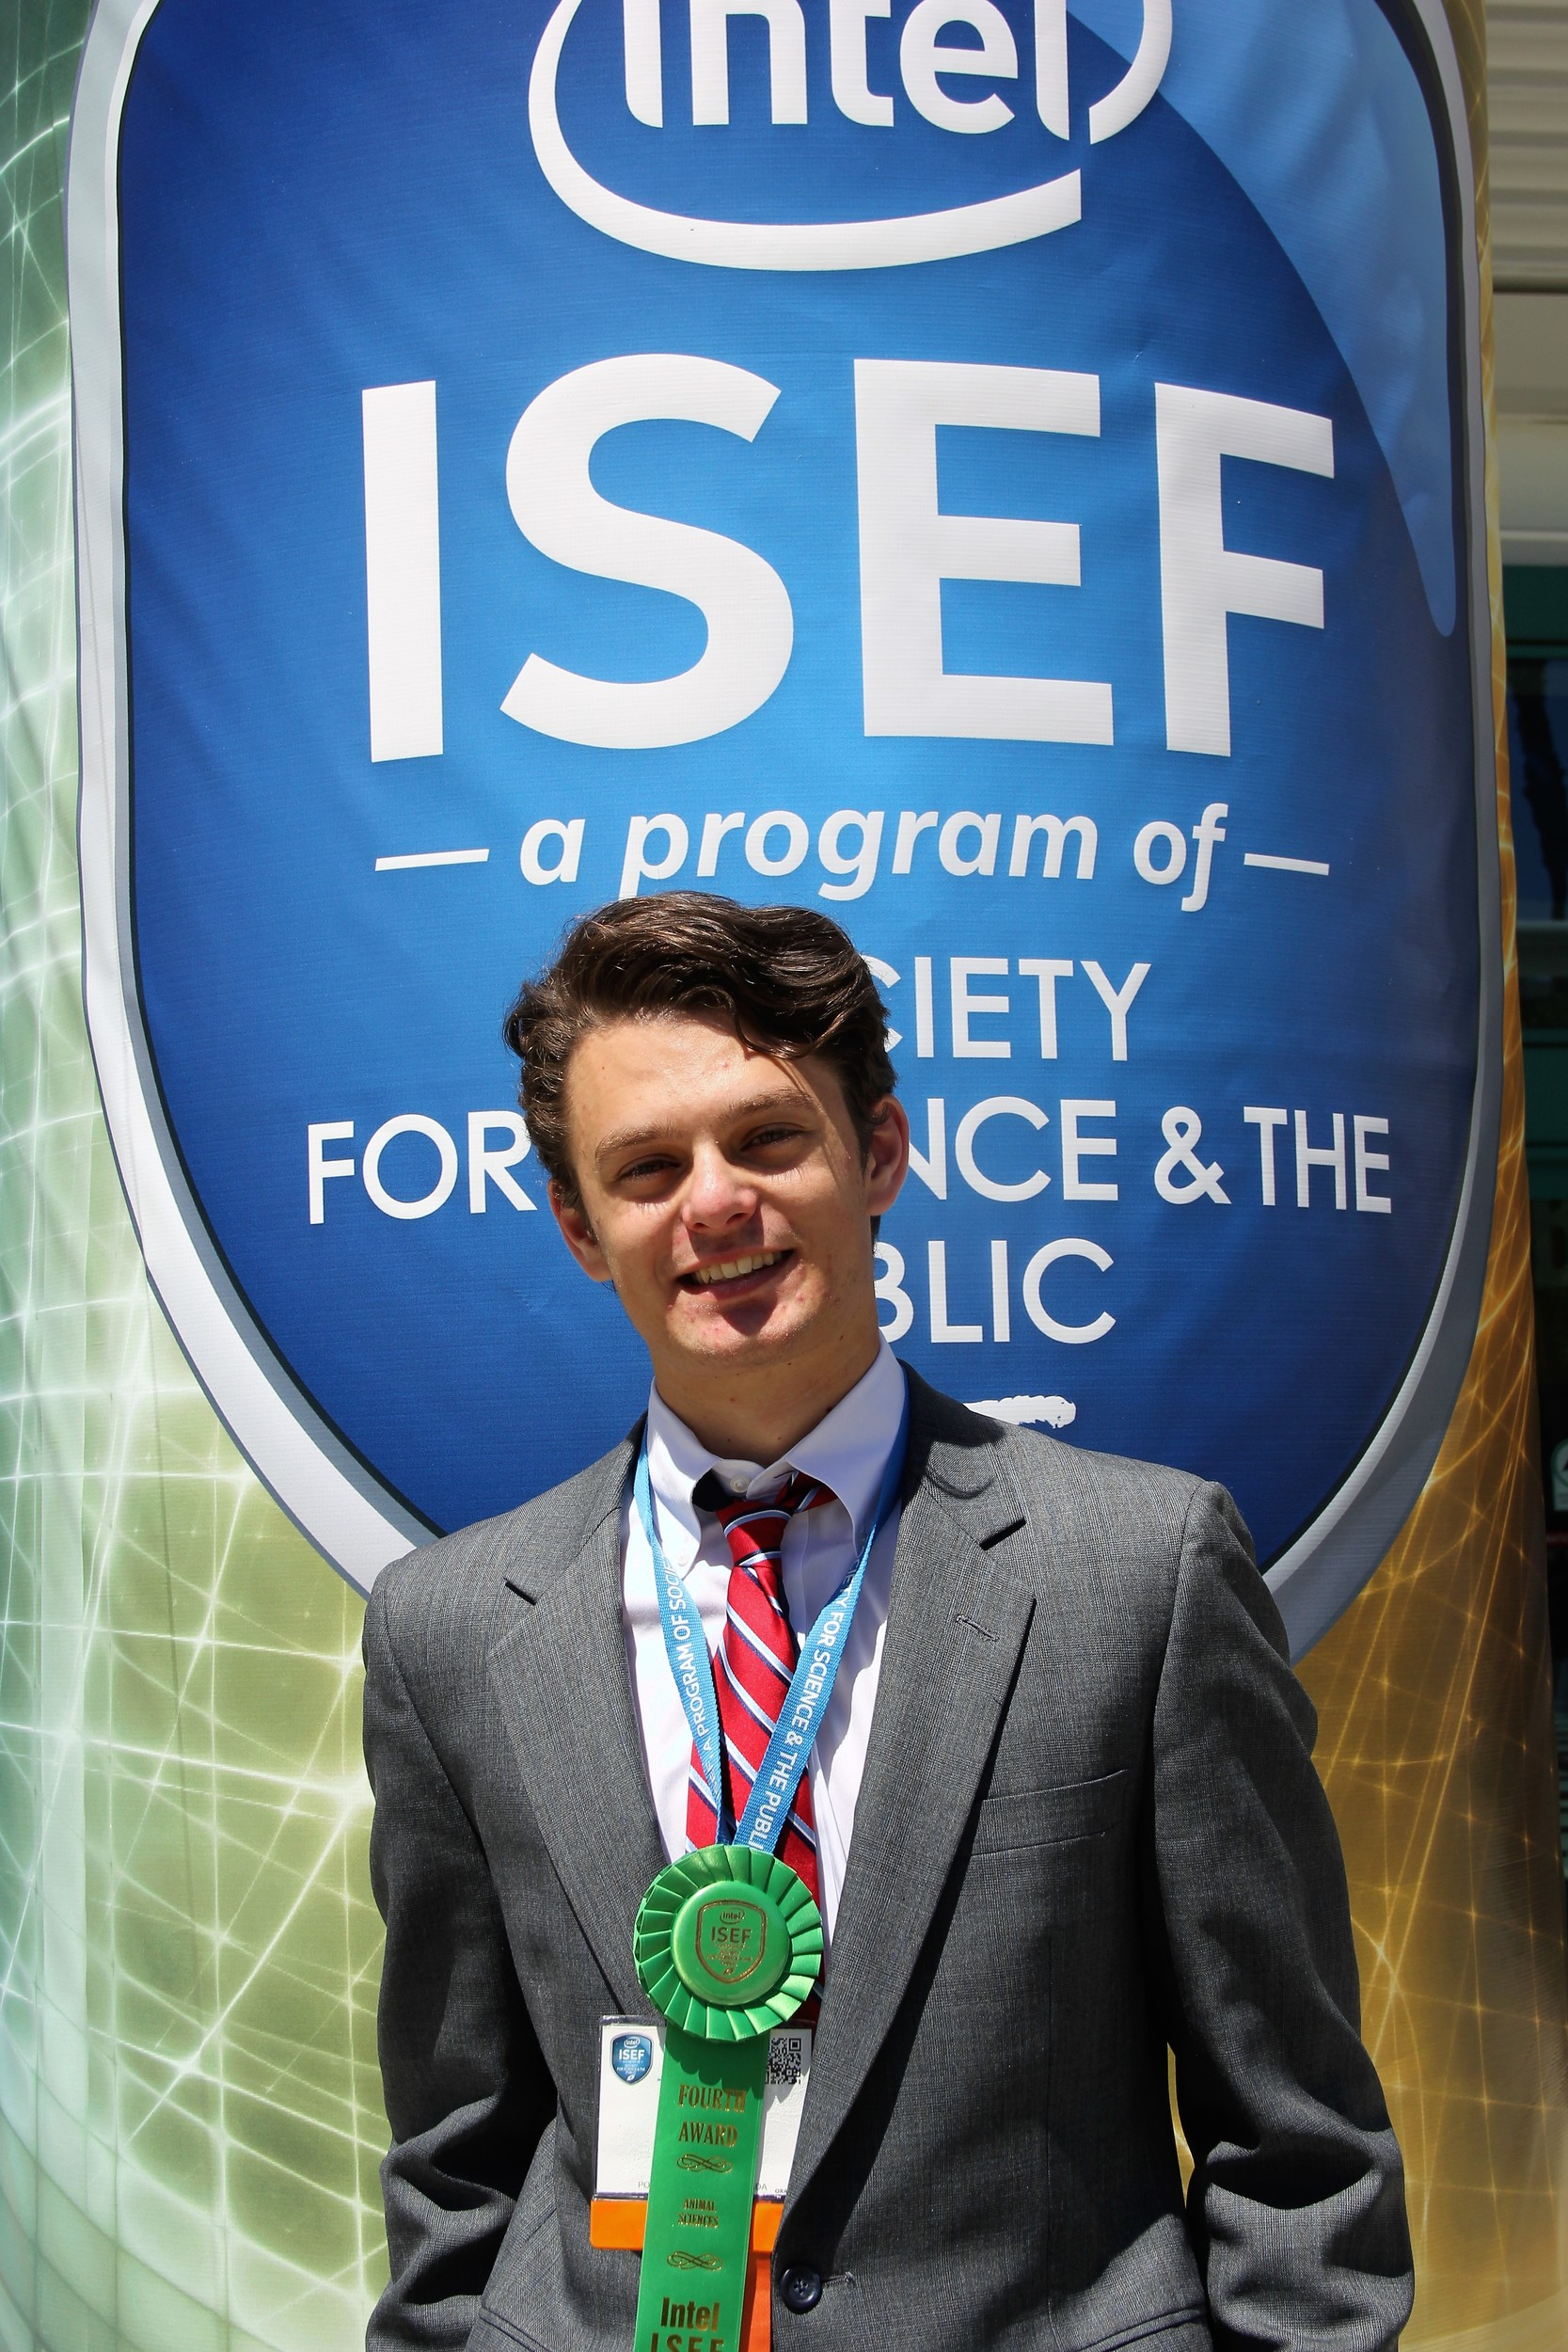 James Staman took fourth place at the Intel International Science and Engineering Fair in Los Angeles in May.